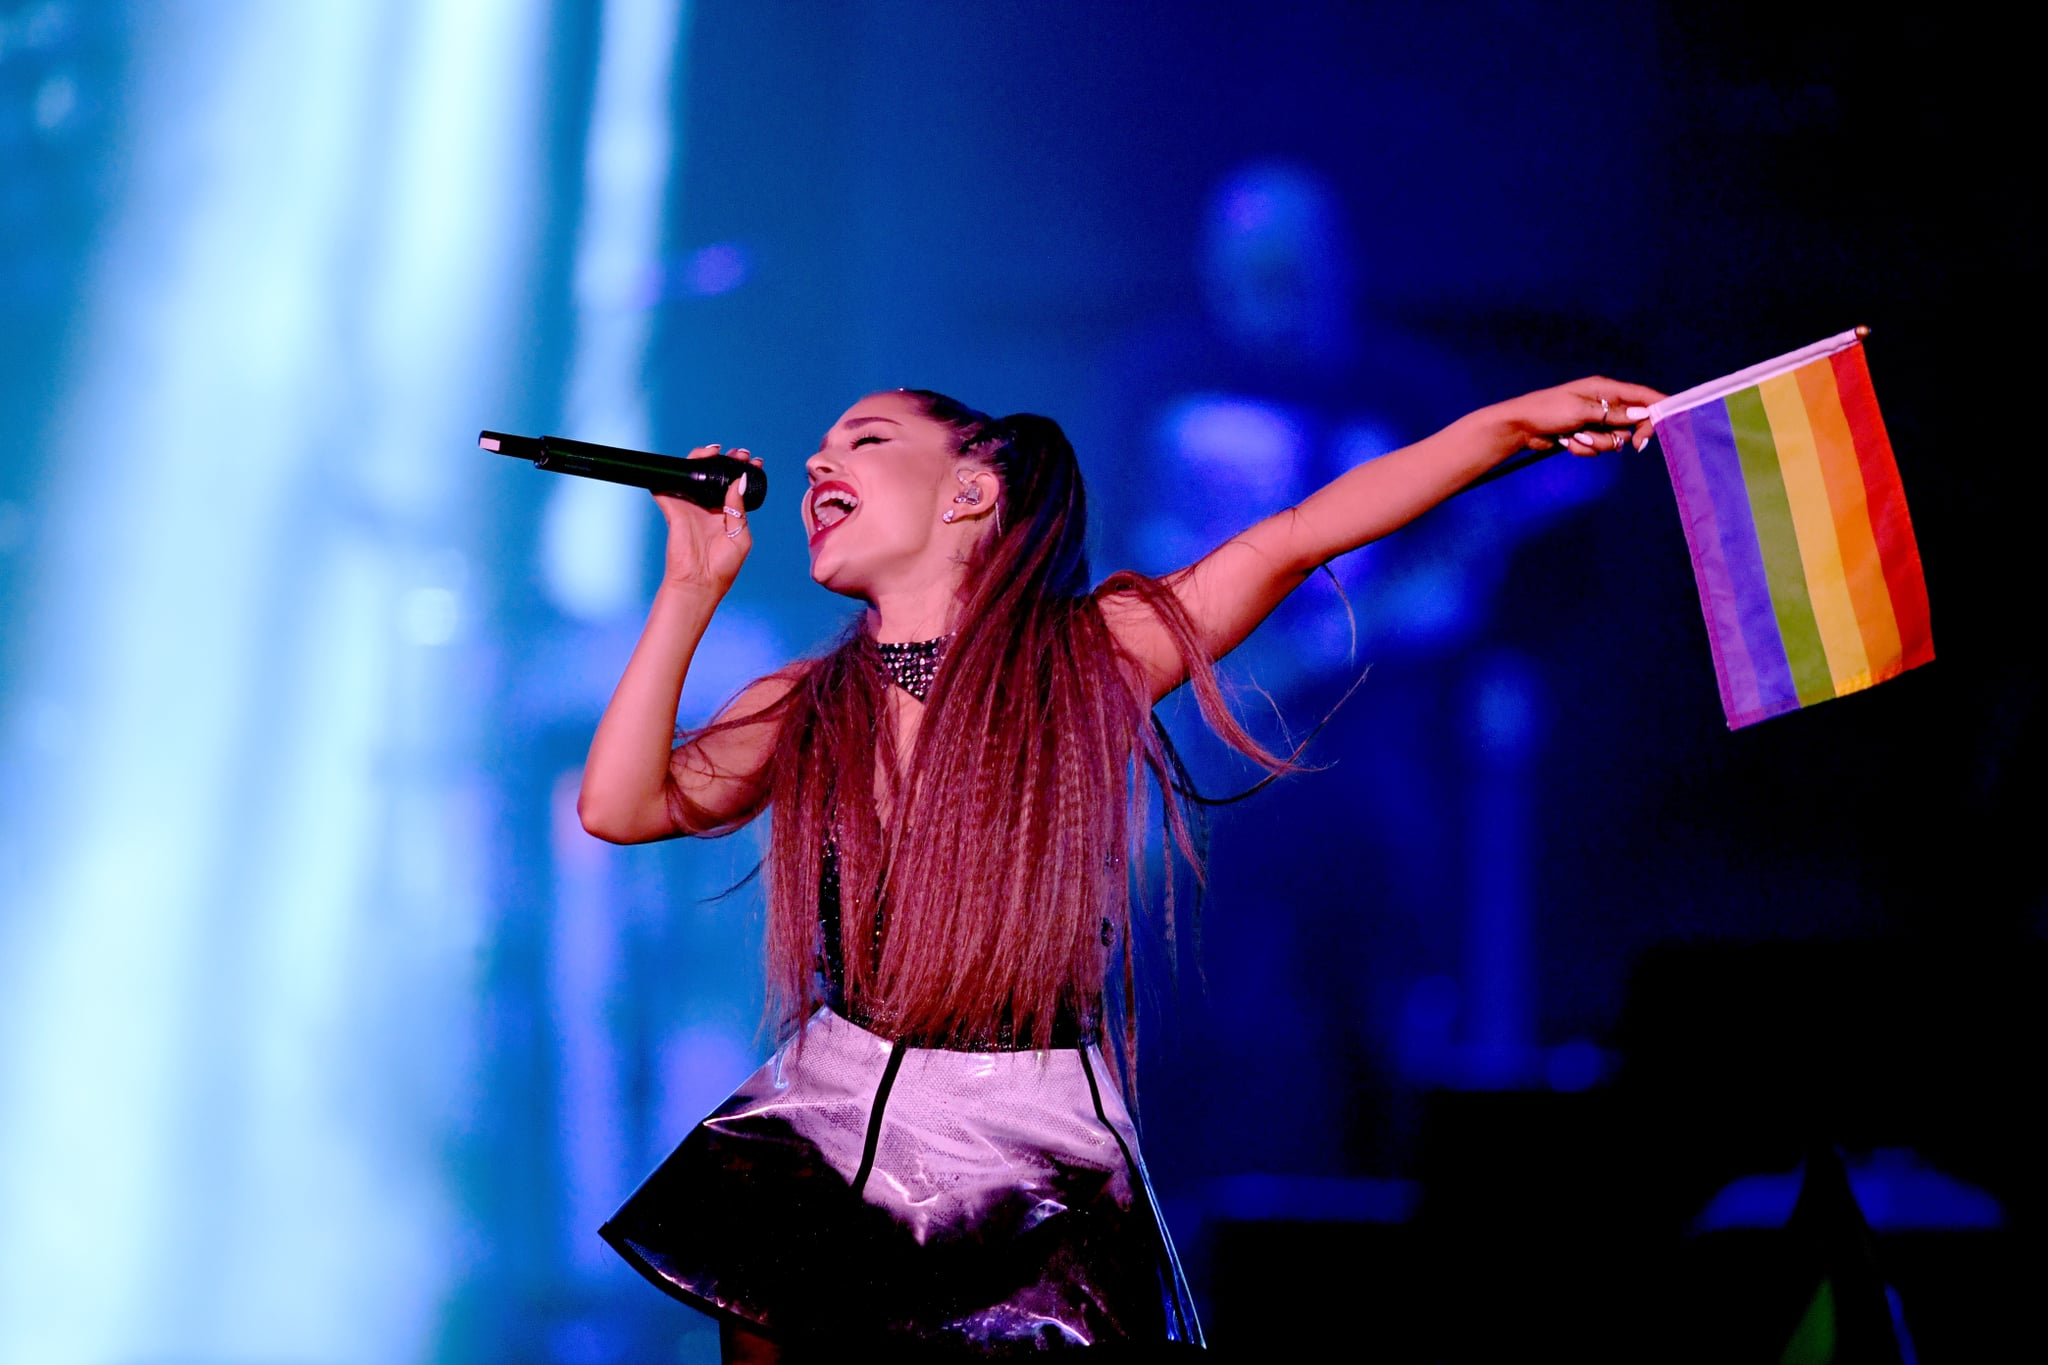 LOS ANGELES, CA - JUNE 02:  (EDITORIAL USE ONLY. NO COMMERCIAL USE) Ariana Grande performs onstage during the 2018 iHeartRadio Wango Tango by AT&T at Banc of California Stadium on June 2, 2018 in Los Angeles, California.  (Photo by Kevin Winter/Getty Images for iHeartMedia)